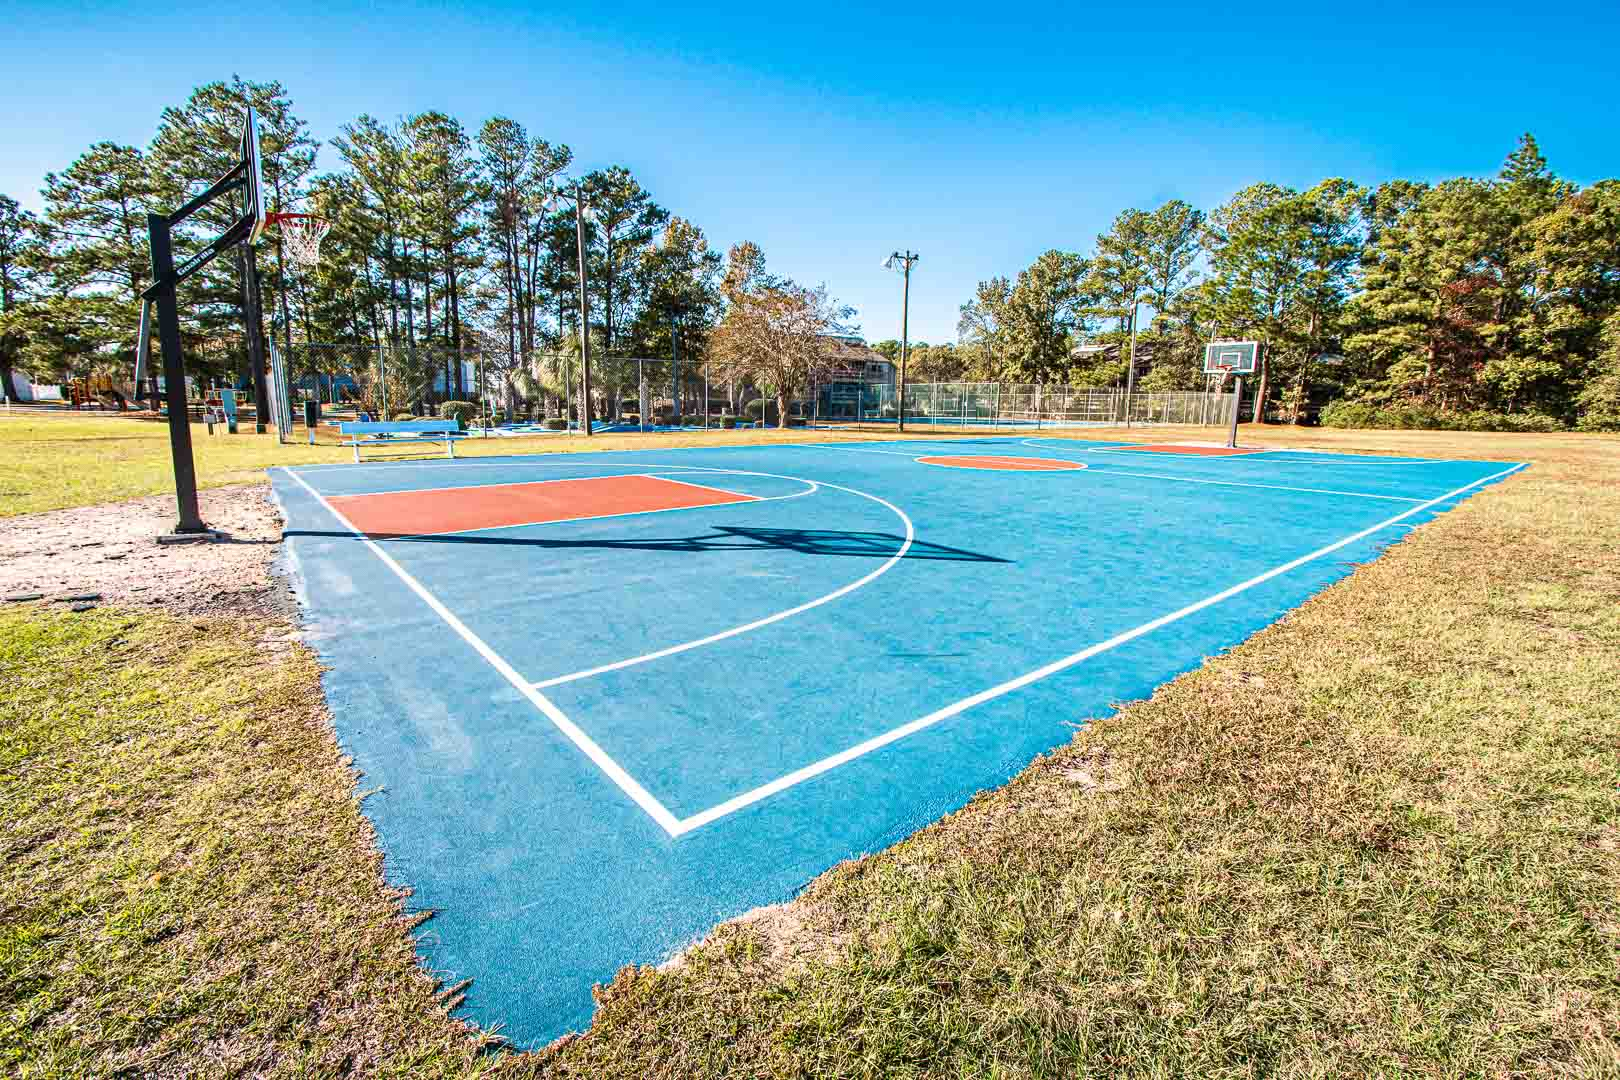 An outdoor basketball court at VRI's Harbourside II in New Bern, North Carolina.